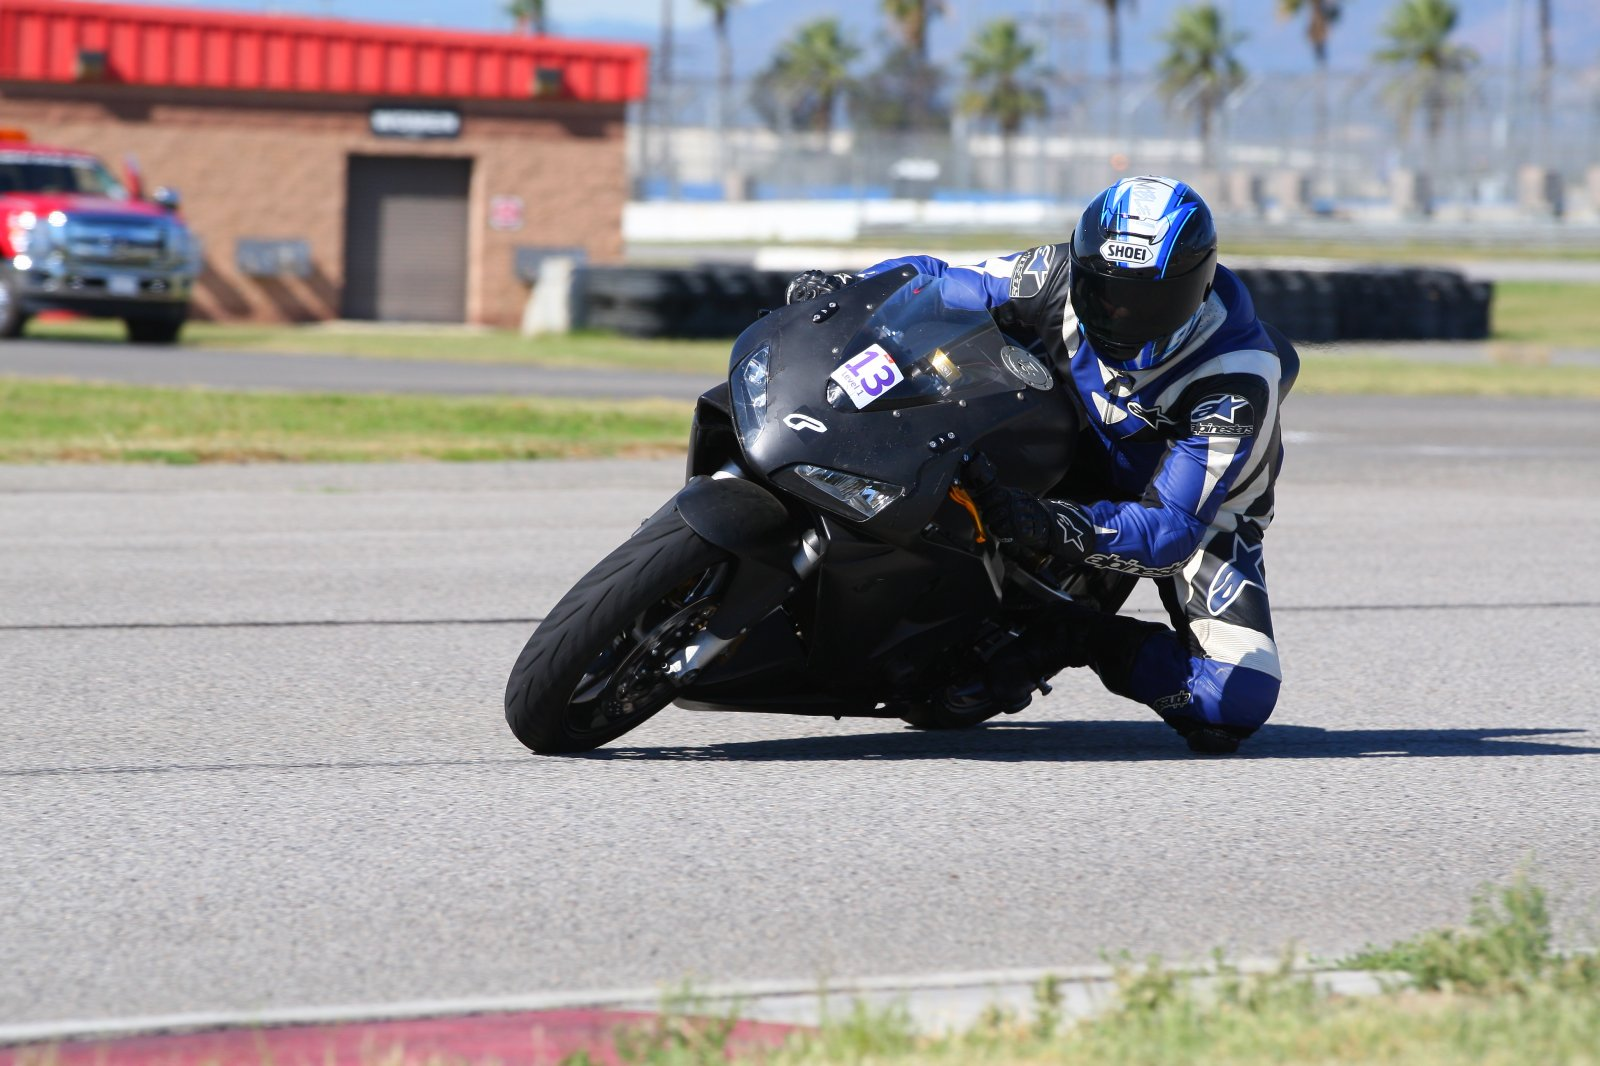 Oct-24-2015-Fastrack Riders - Level 1 - Turn 6 Inside (1120) - ACS_8521_Oct2415_by_BR-CaliPhoto.jpg